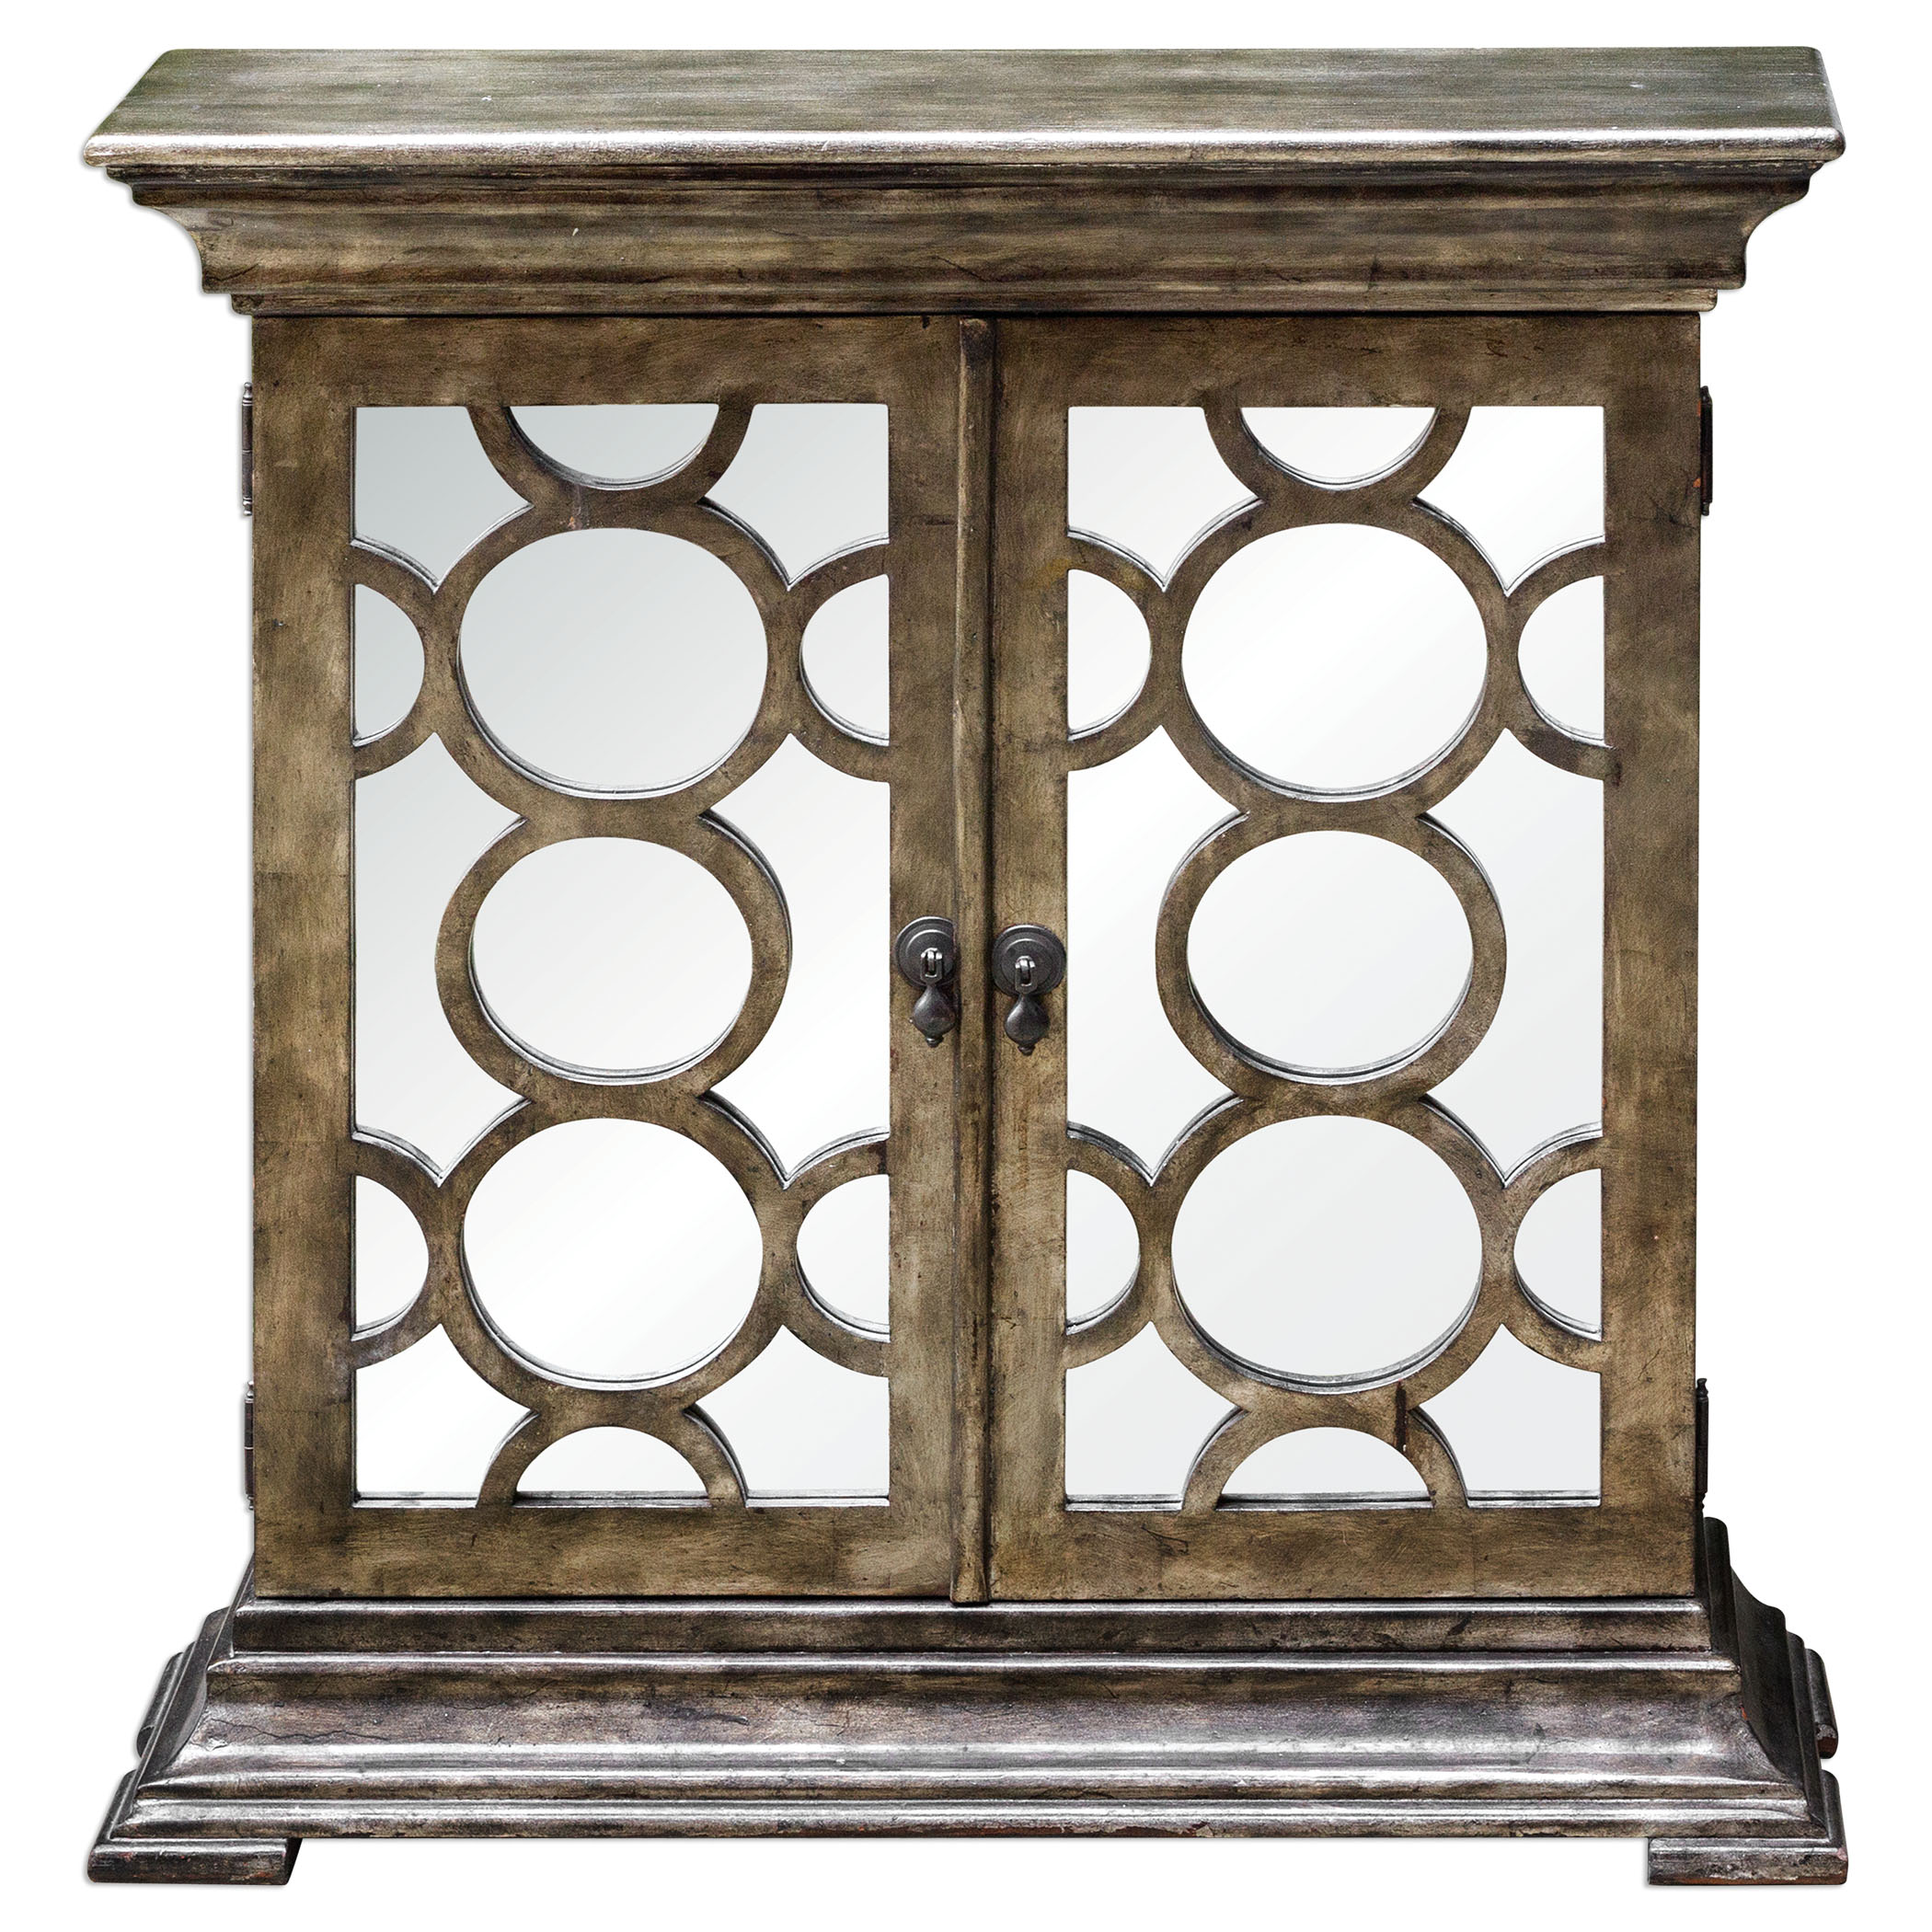 Uttermost Accent Furniture Glasson Mirrored Console Cabinet - Item Number: 25684